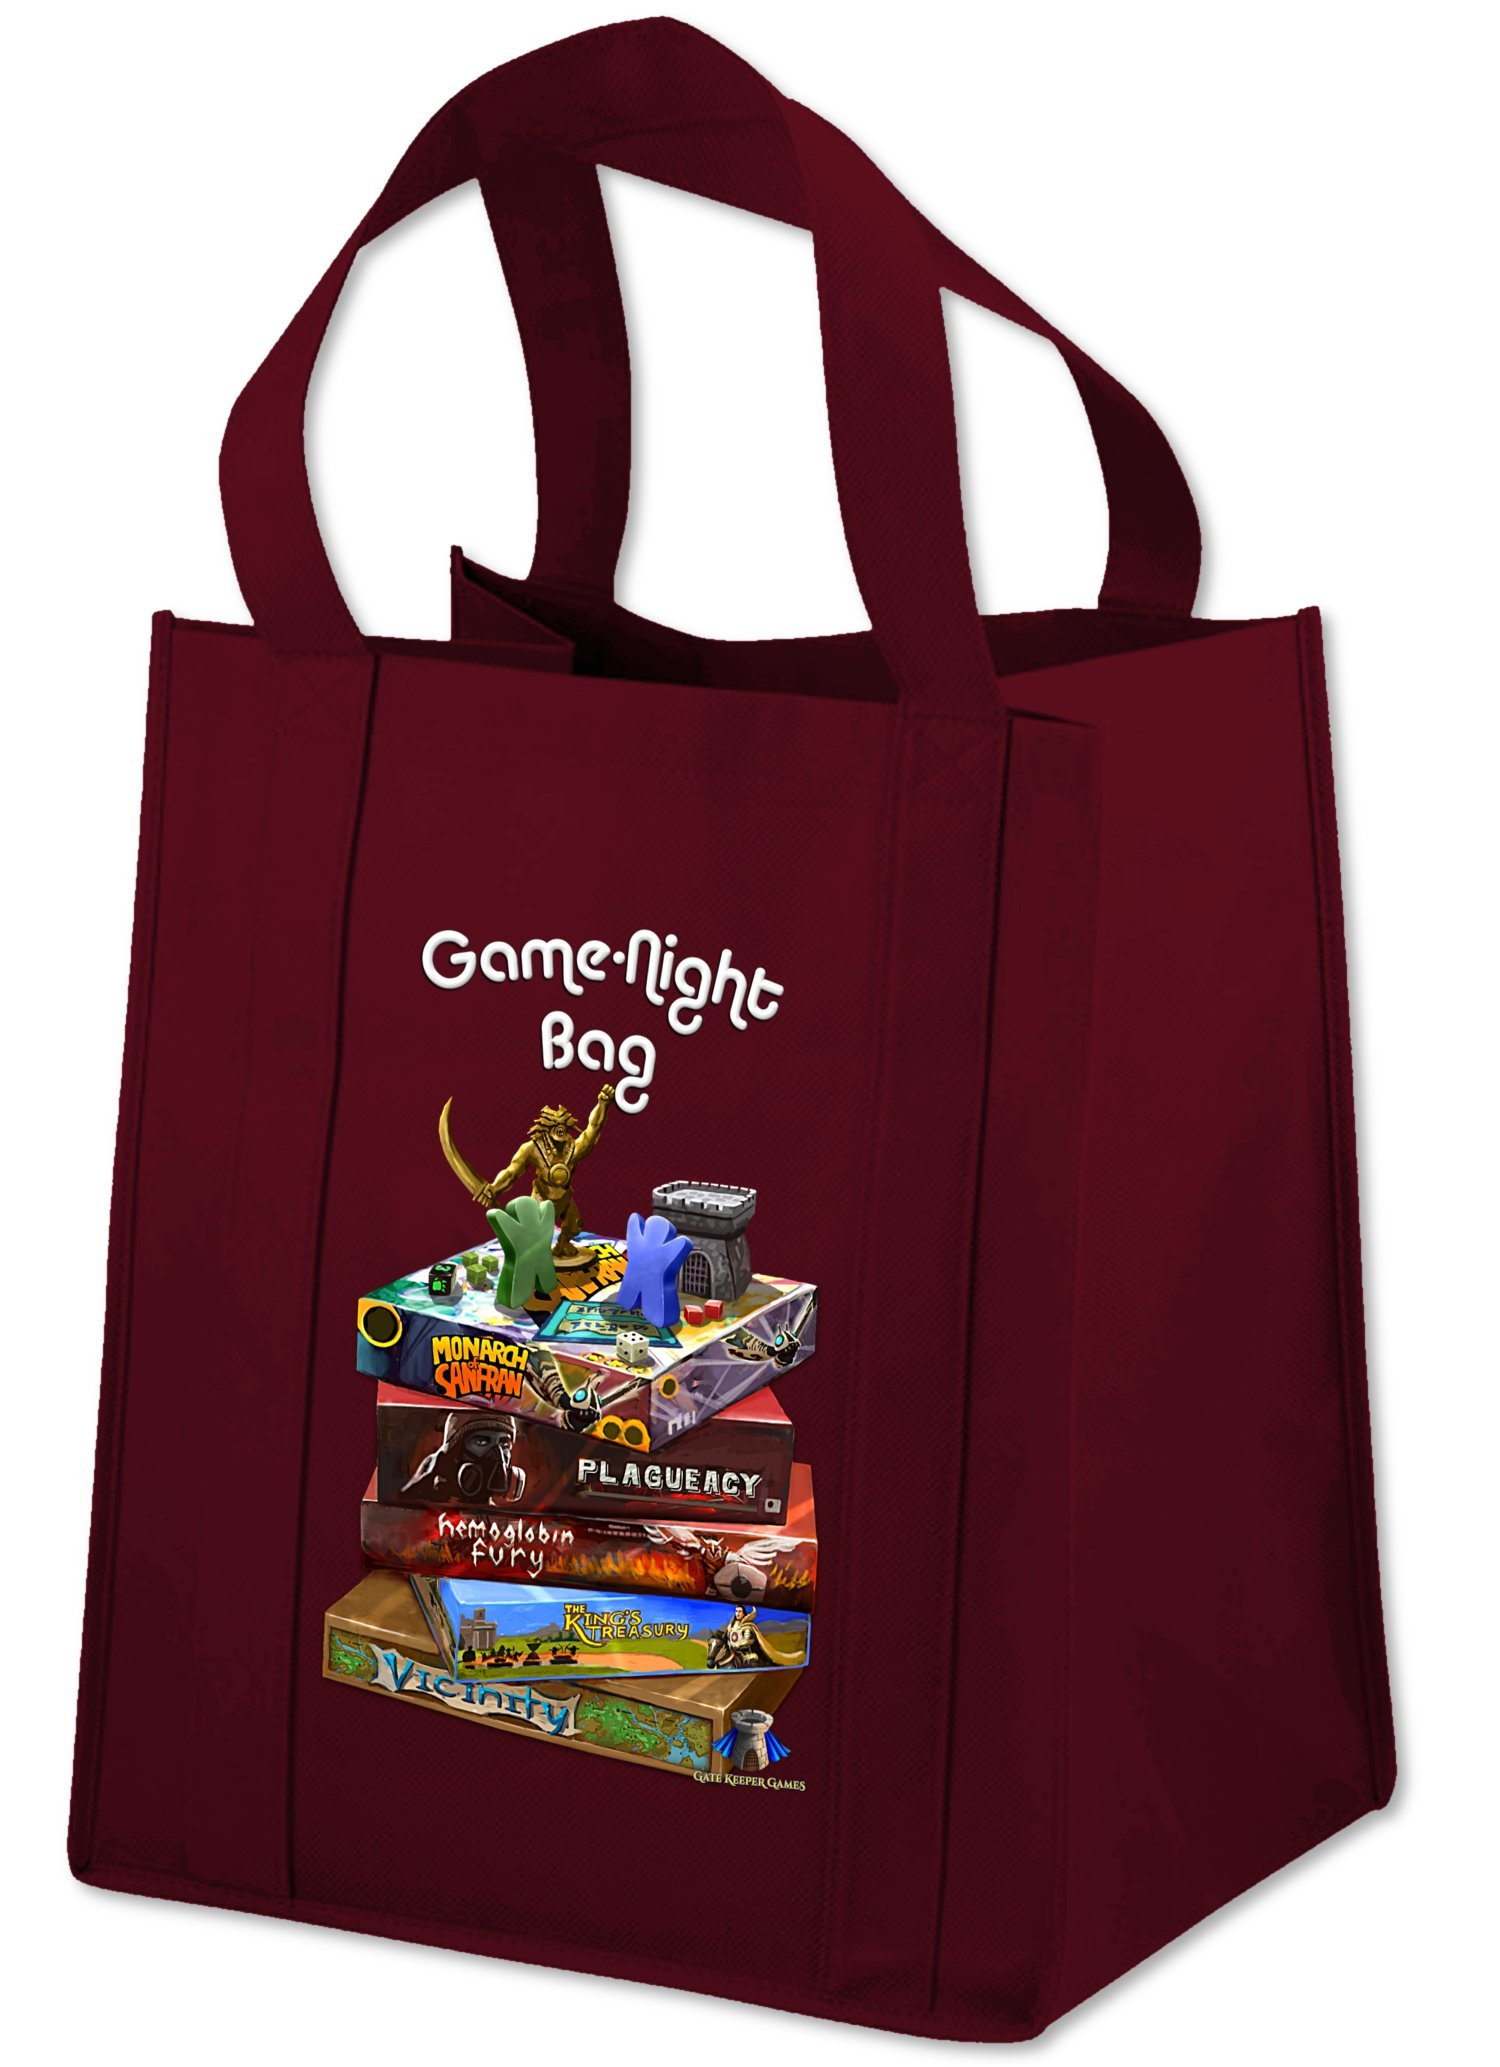 Game Night Bag ''The Homage'' - 15x13x10'' Tote Bag w/ Reinforced Base & Handles - Carries up to 40lbs